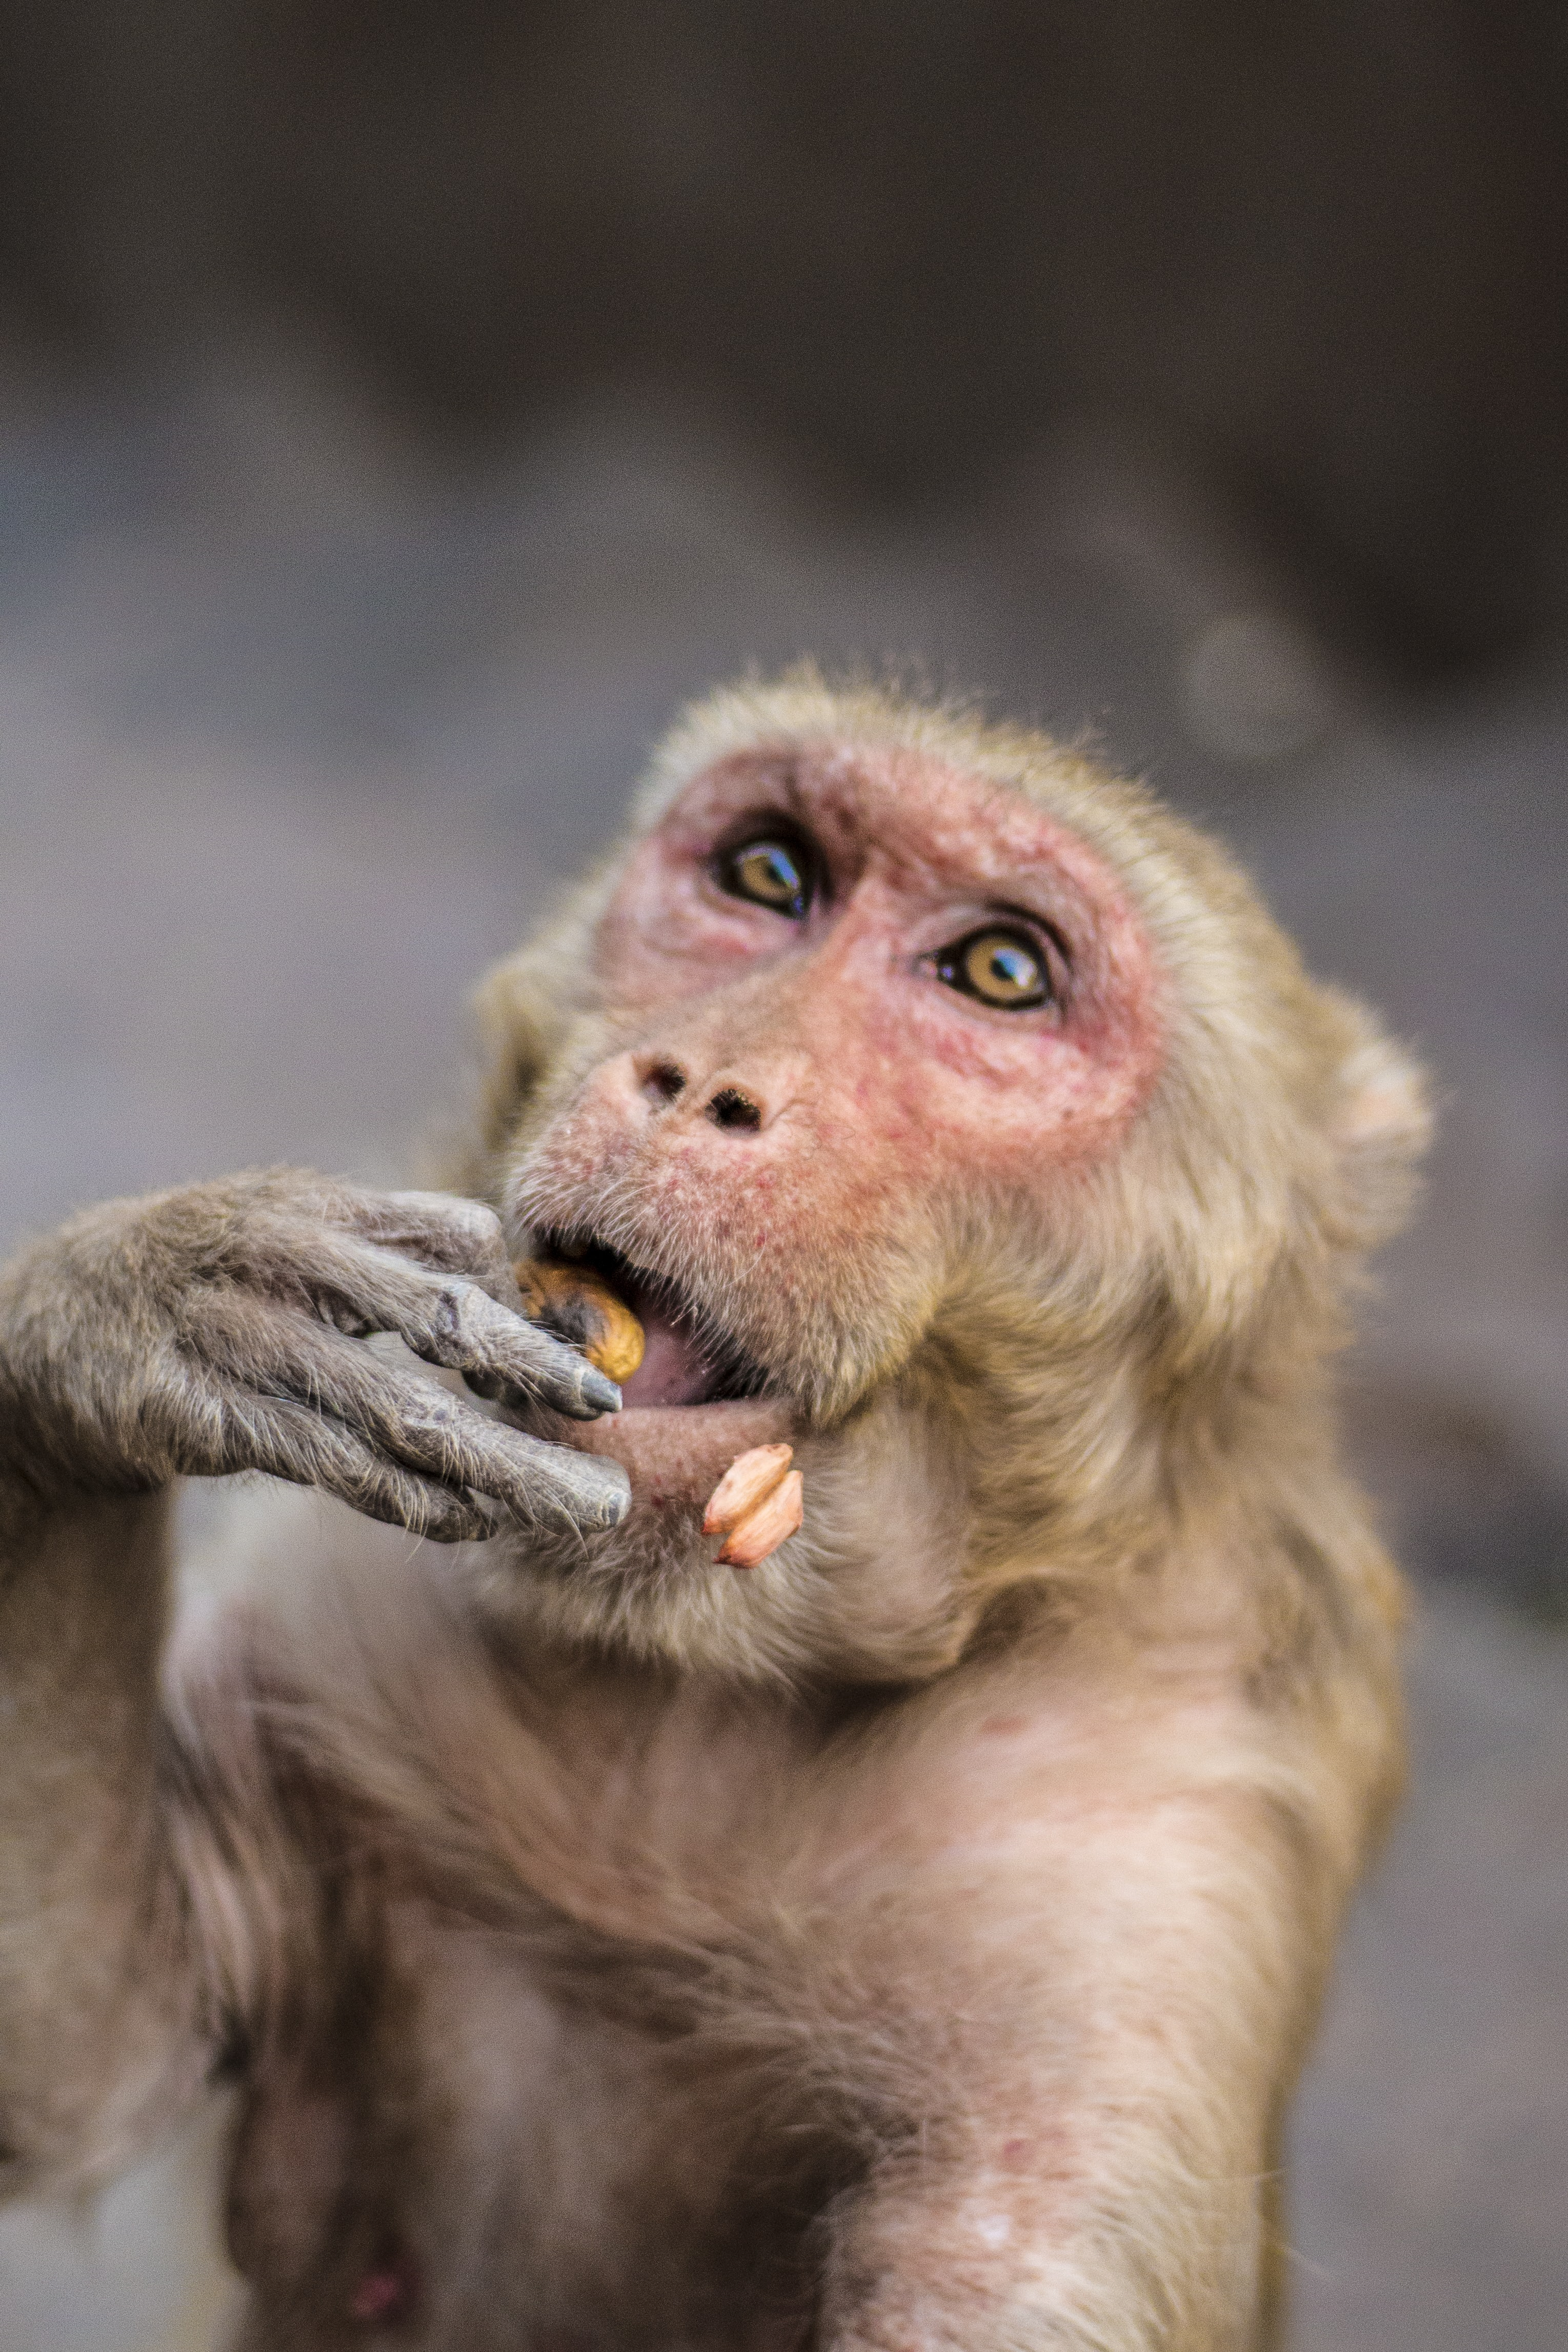 brown monkey in shallow focus photography